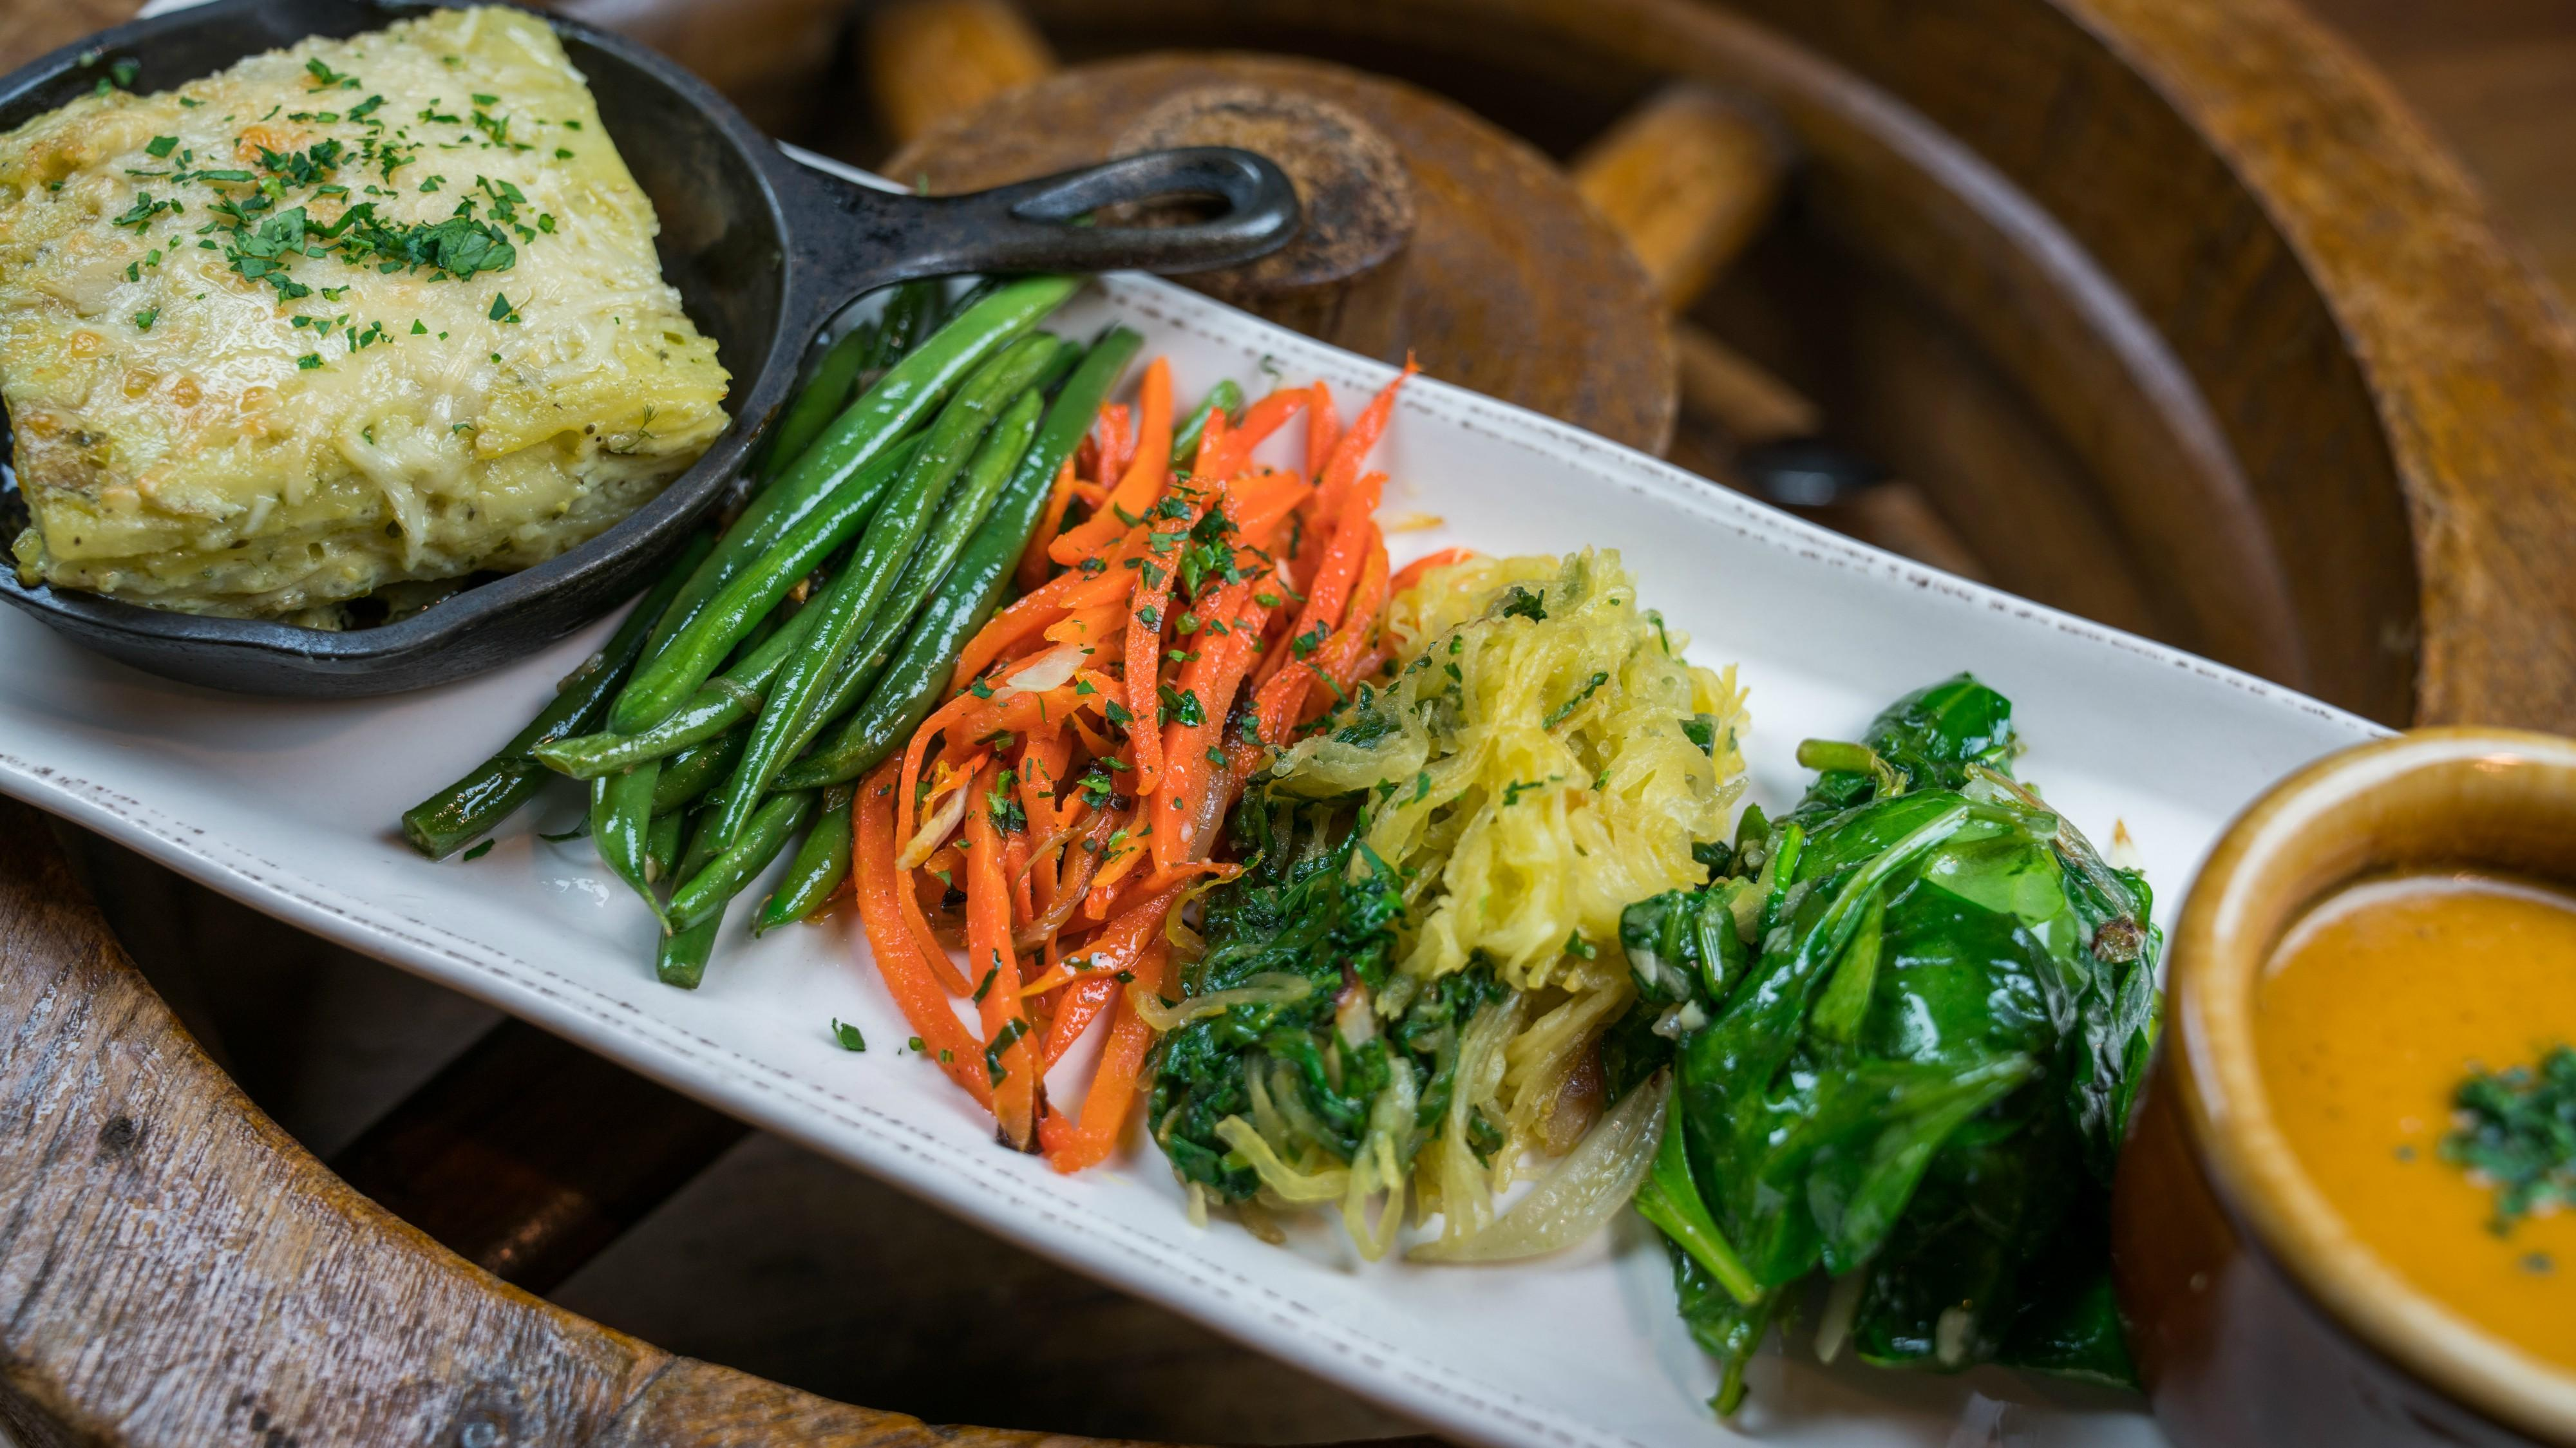 Vegetarian Nosh Choose any 5 vegetables or starch combination & 1 sauce at Tonto Bar & Grill